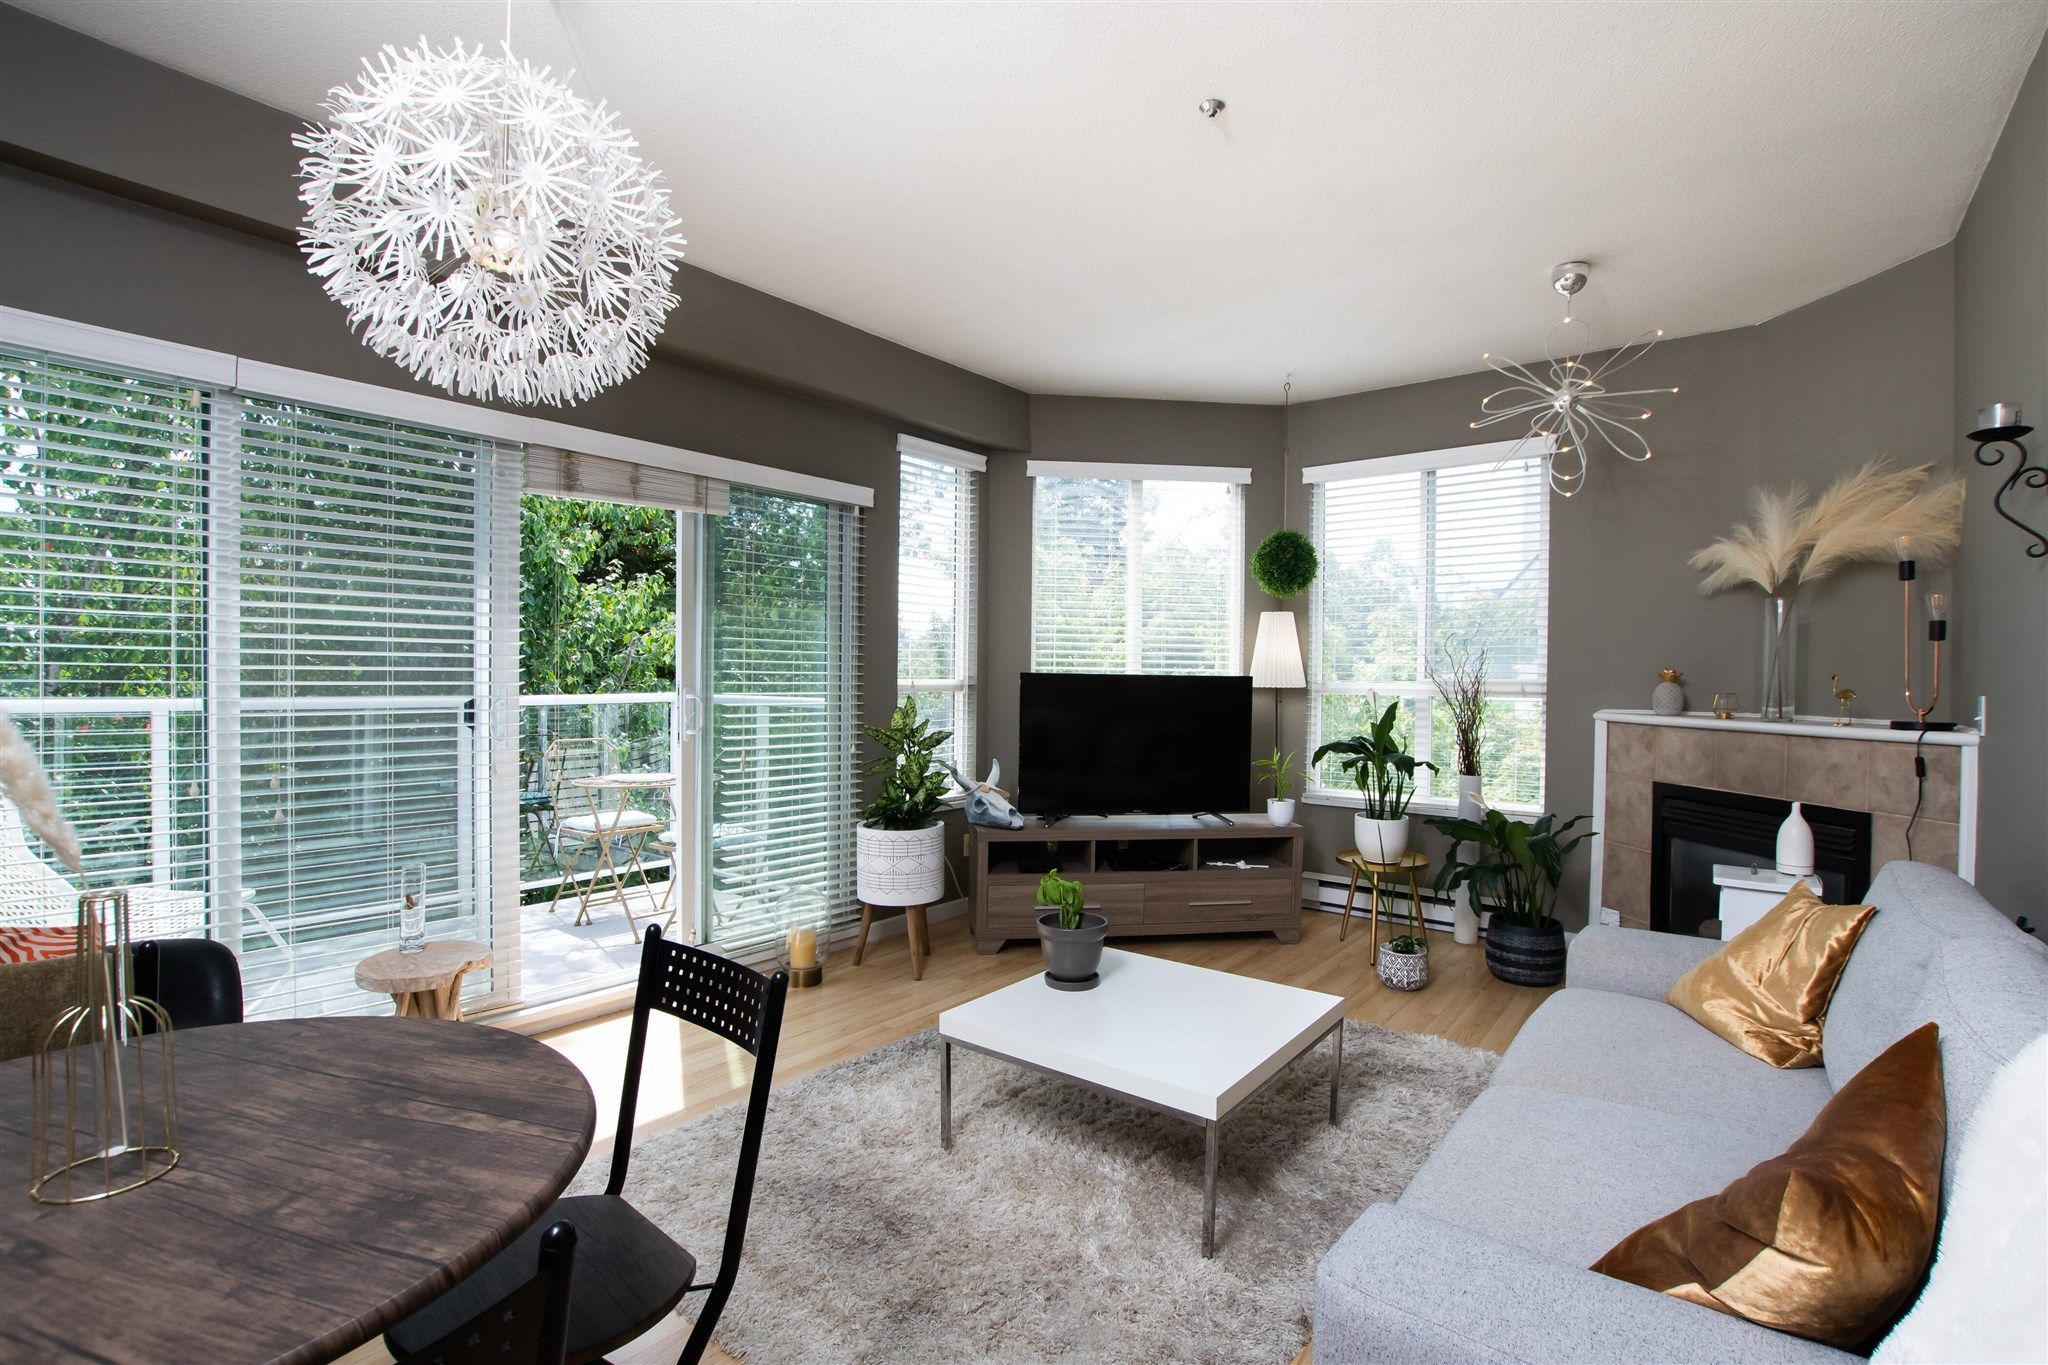 Main Photo: 58 2727 E KENT AVENUE NORTH in Vancouver: South Marine Townhouse for sale (Vancouver East)  : MLS®# R2608636